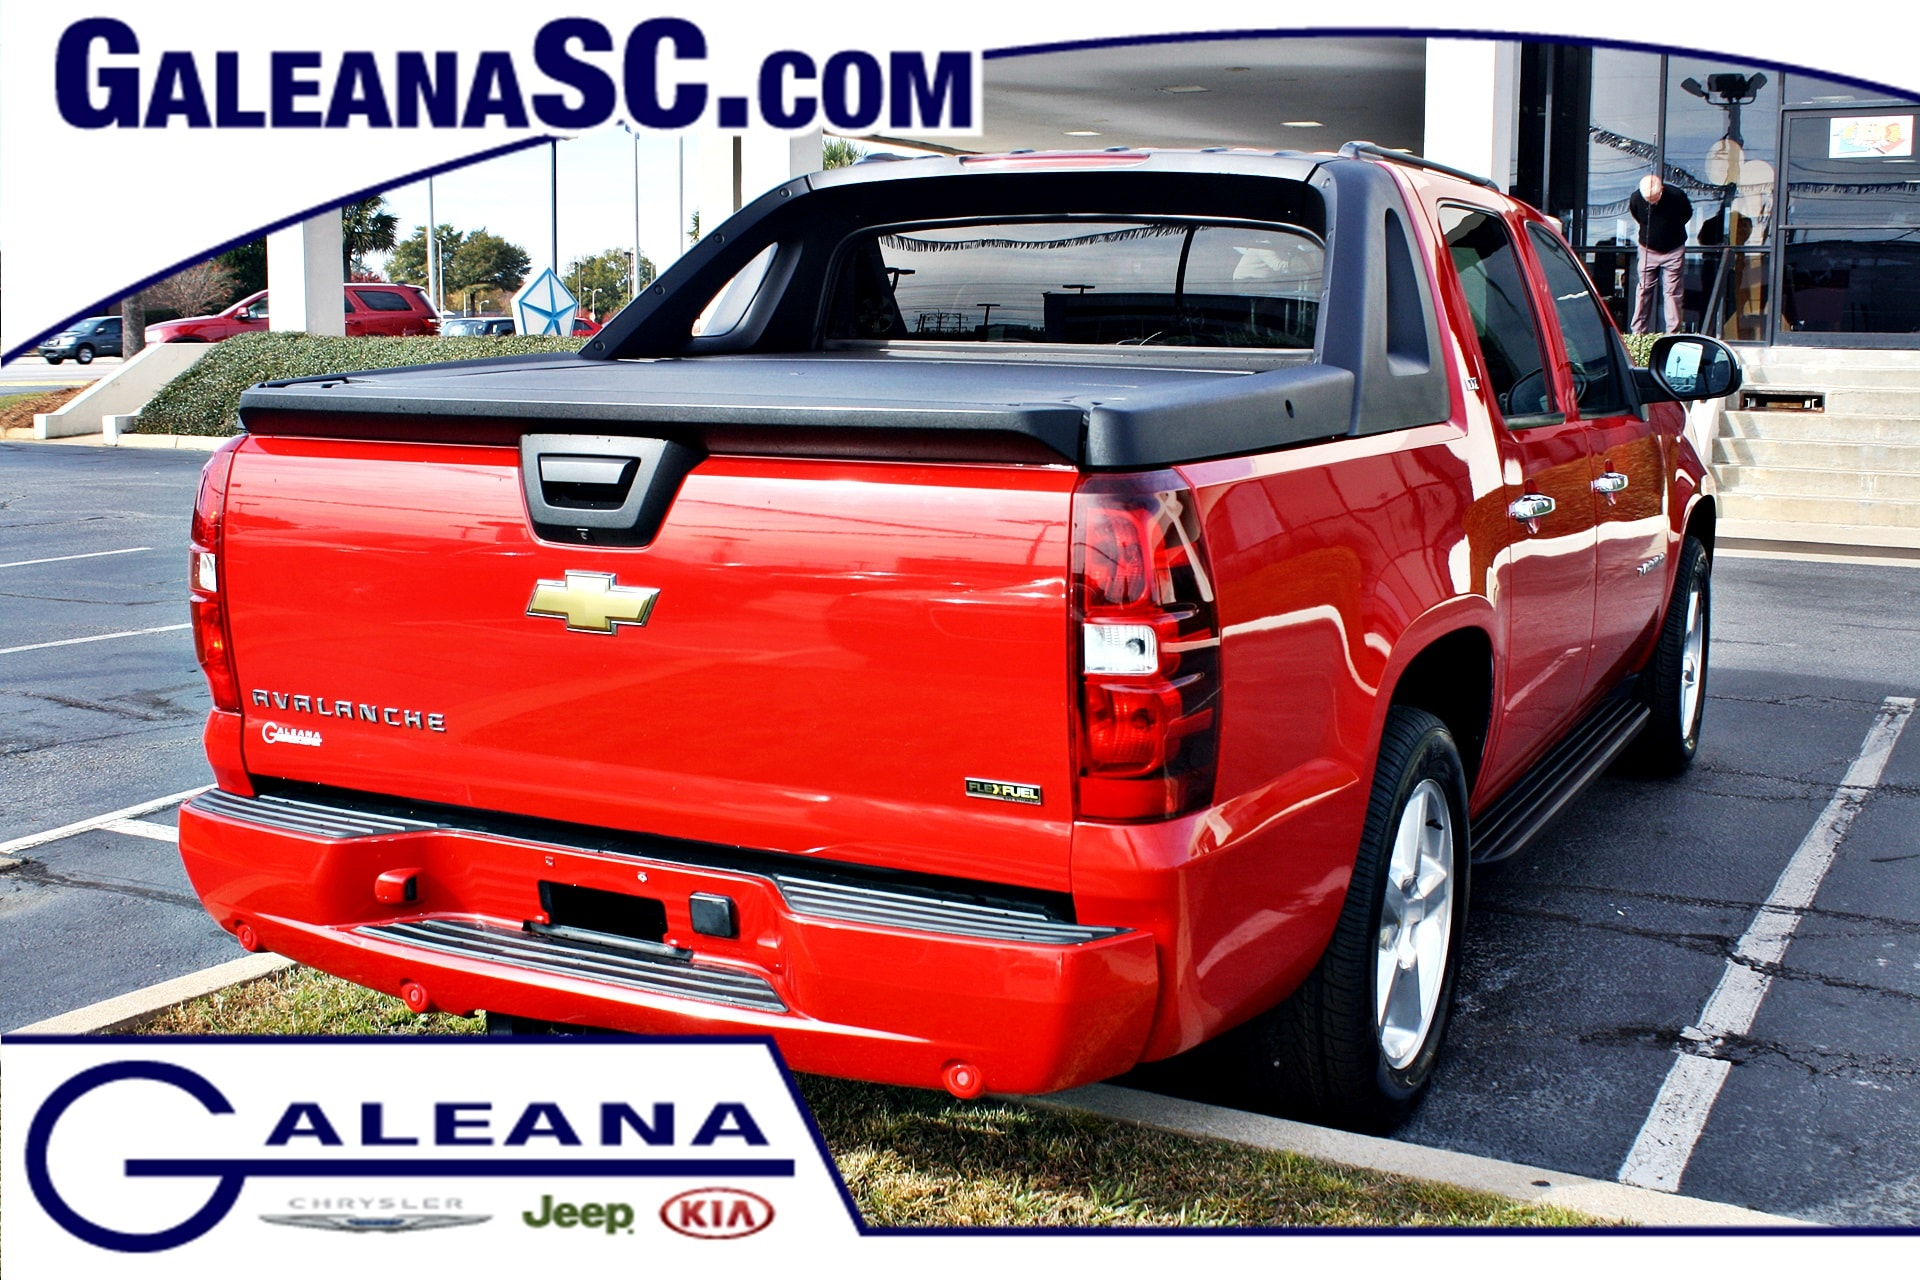 Used 2008 chevrolet avalanche ltz for sale in macomb mi